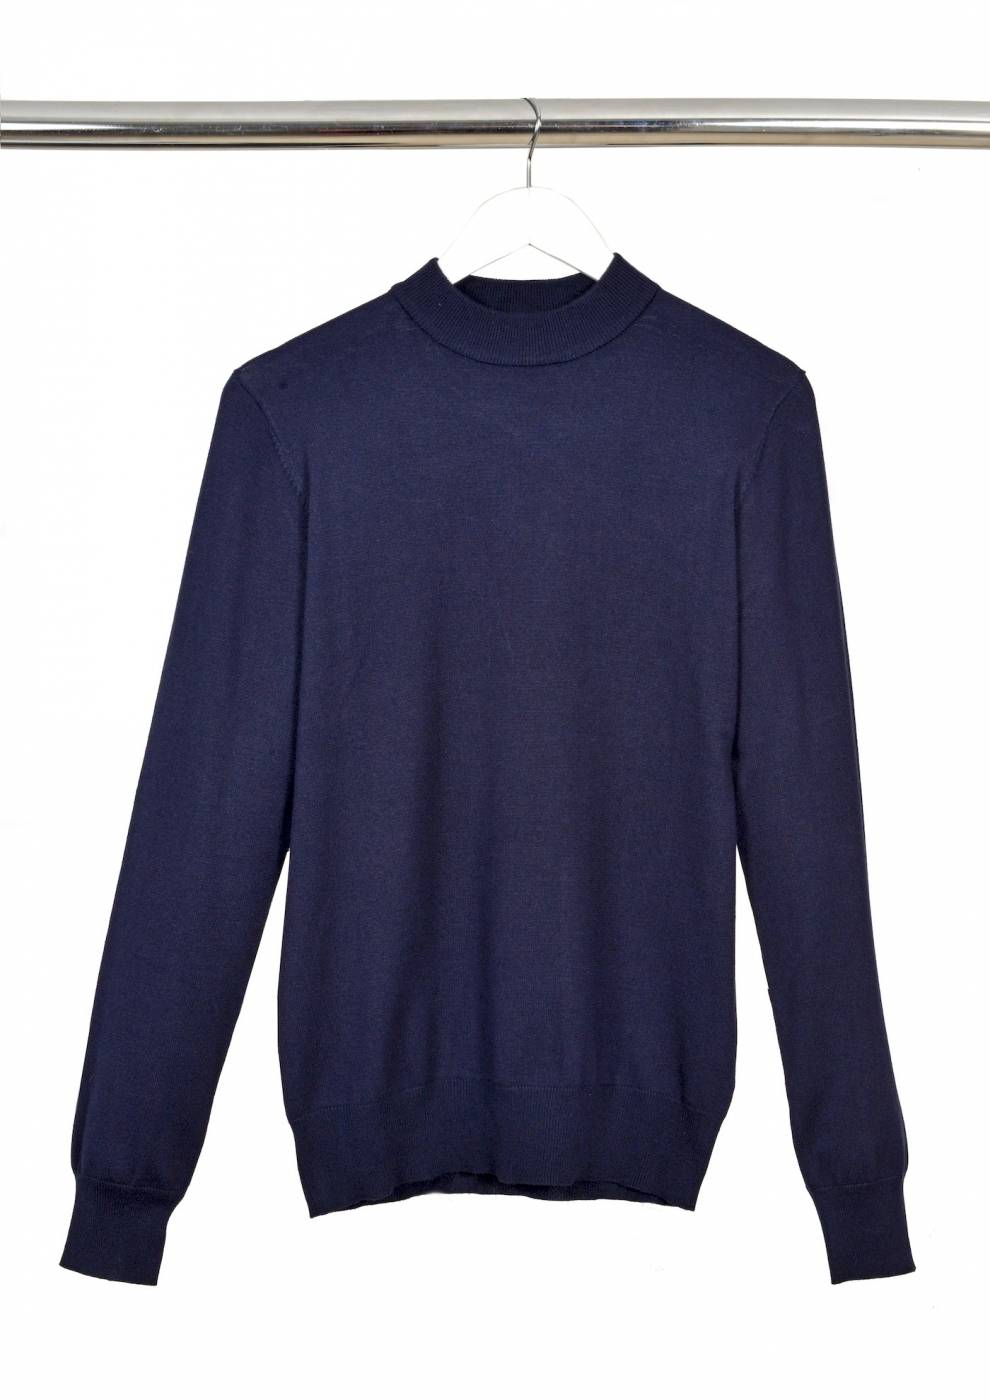 36.Tommy-Navy-small